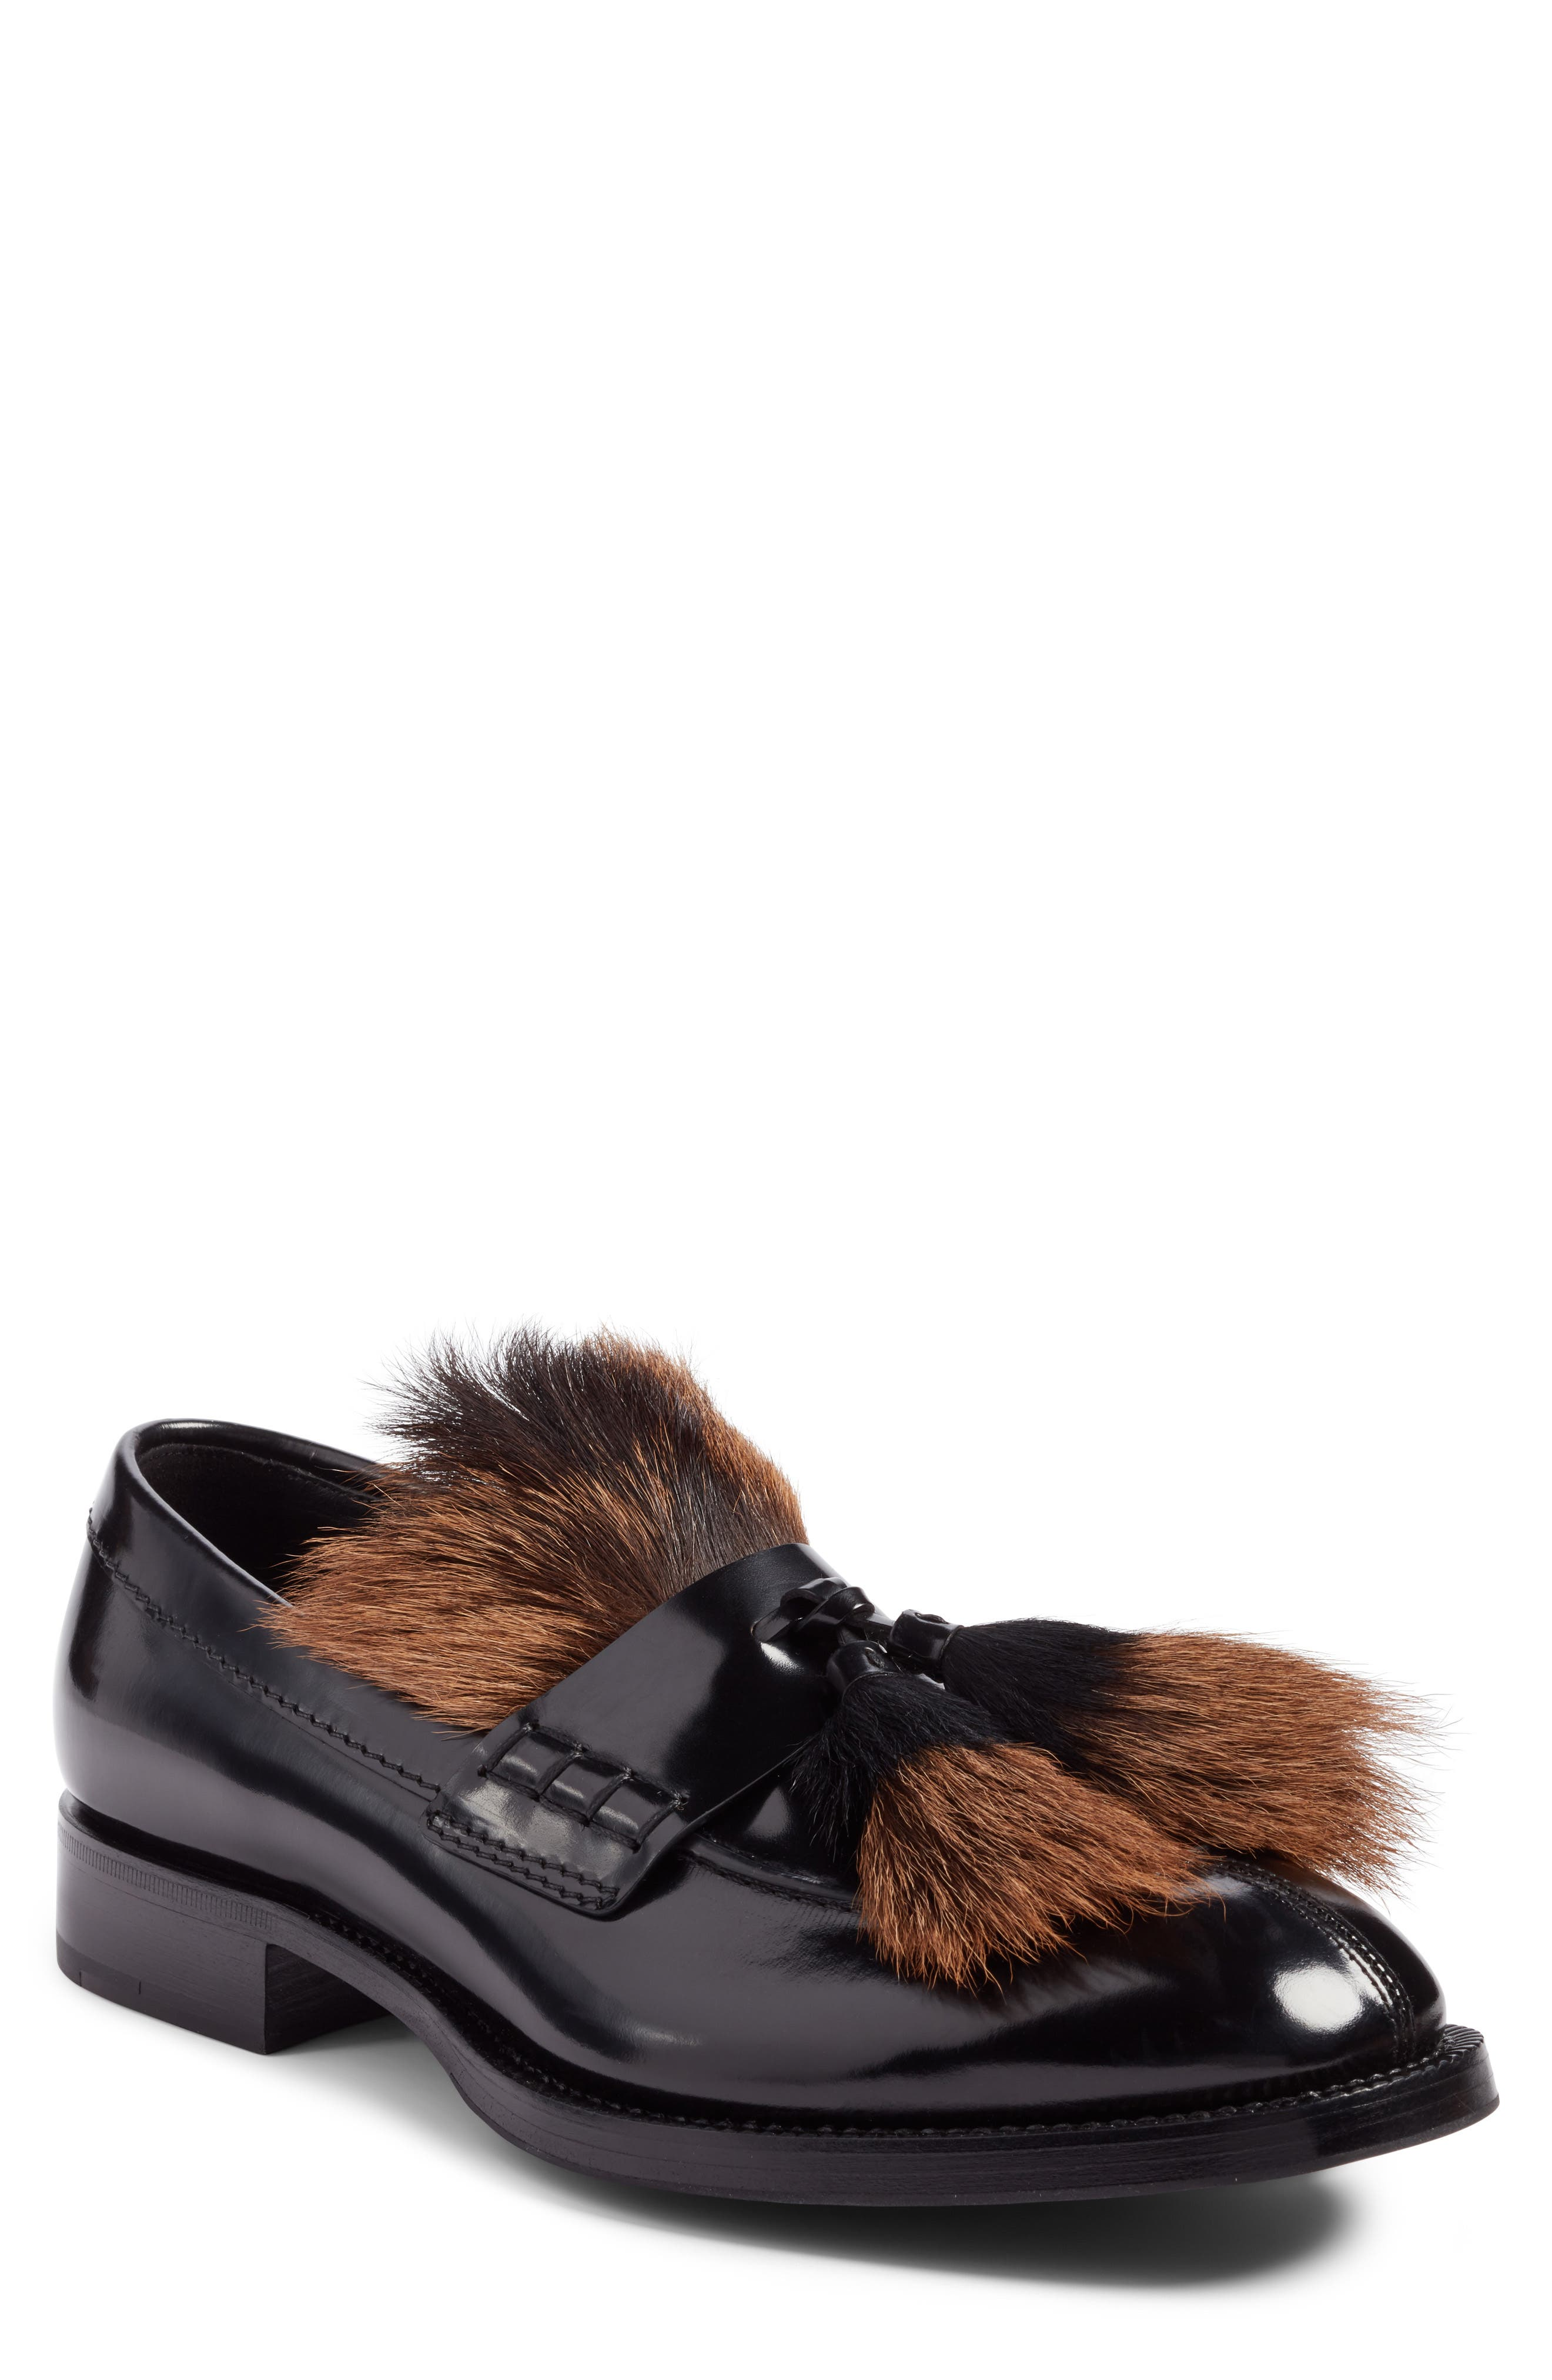 Tassel Loafer with Genuine Goat Hair Trim,                             Main thumbnail 1, color,                             Nero Leather